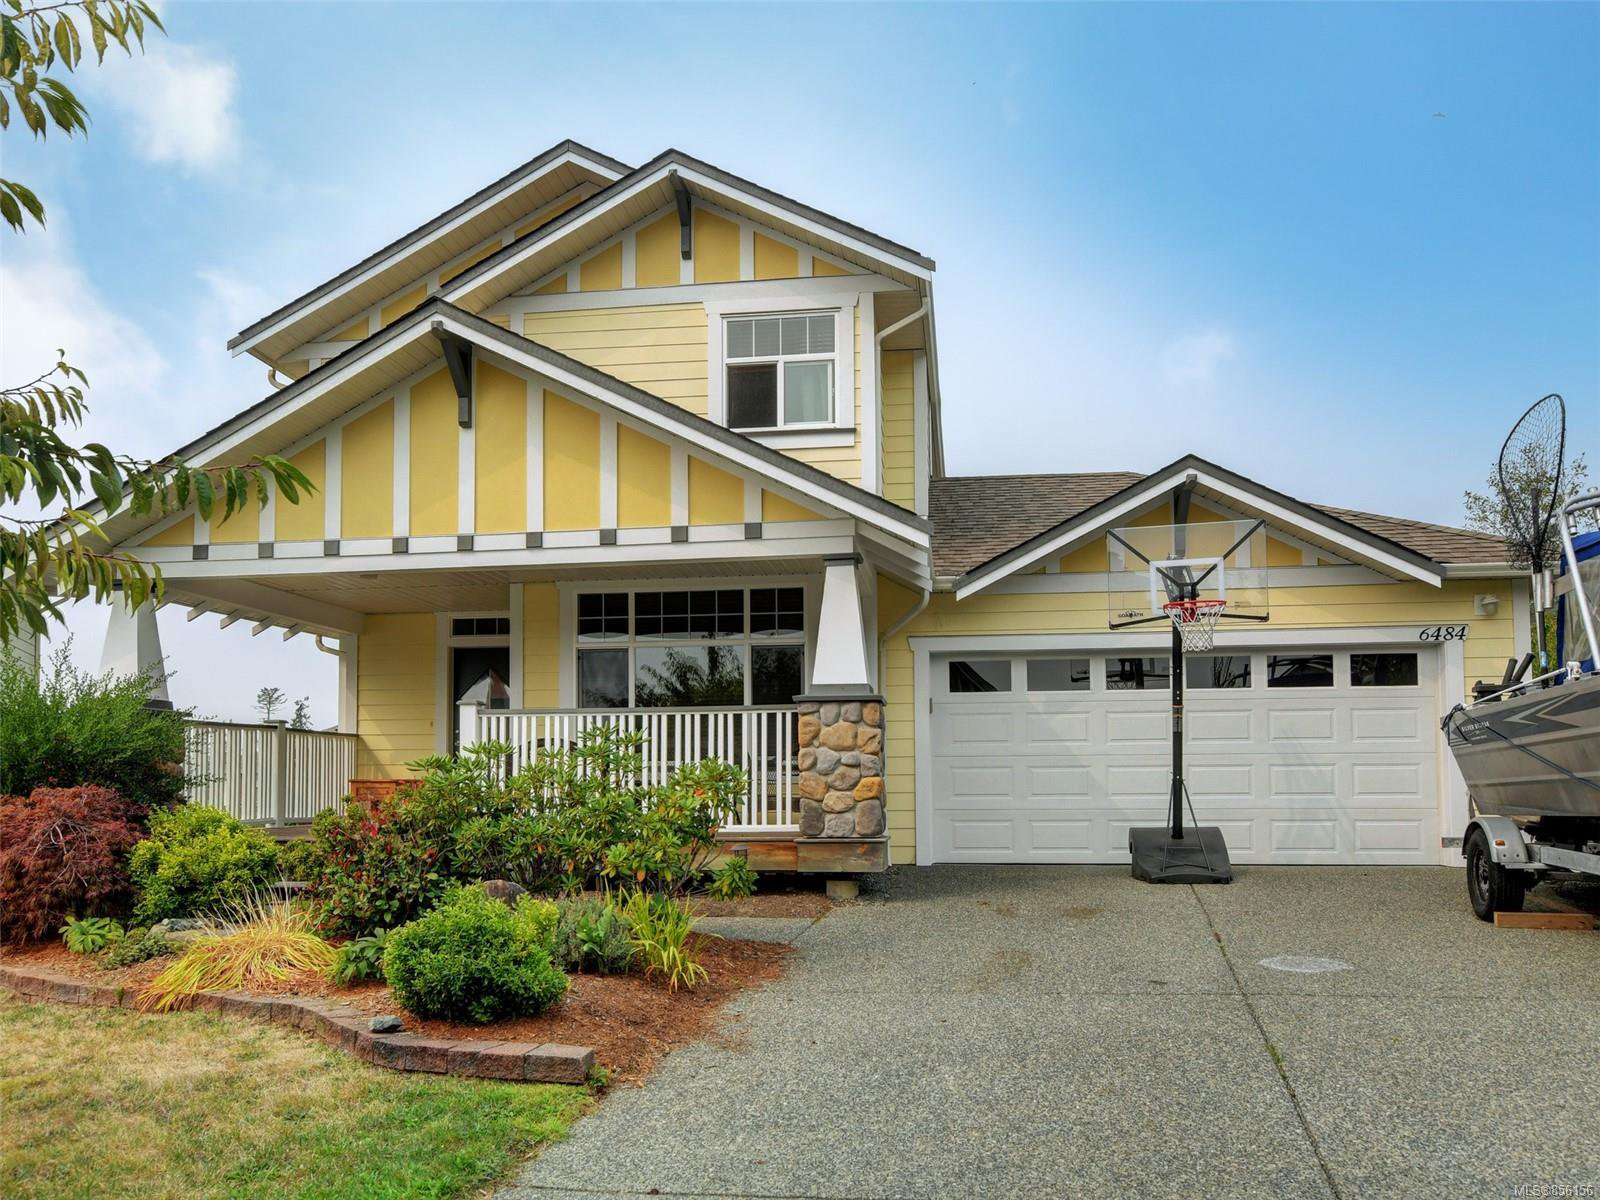 Main Photo: 6484 Beechwood Pl in : Sk Sunriver House for sale (Sooke)  : MLS®# 856156